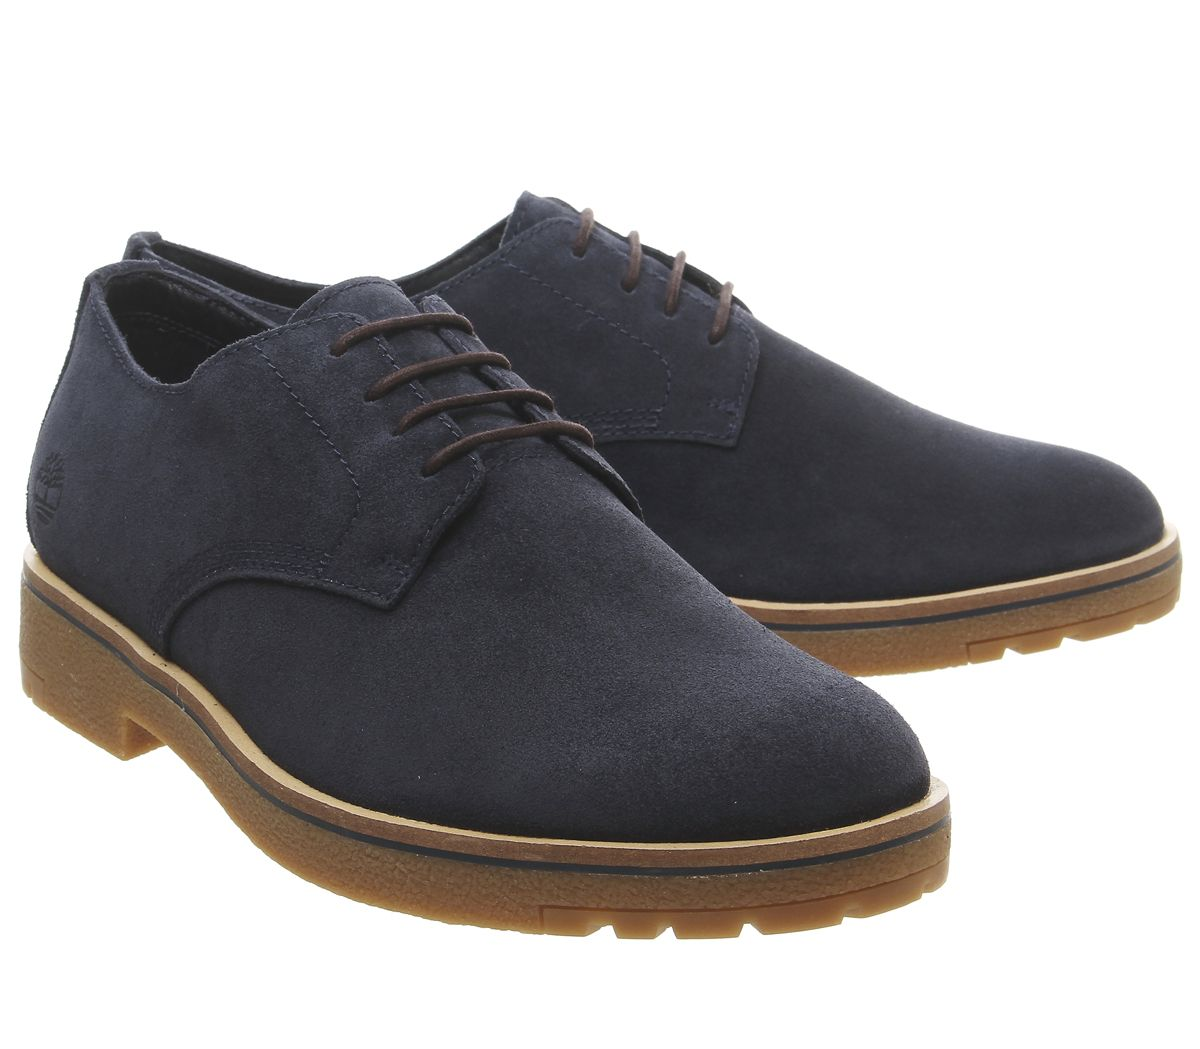 Details about Mens Timberland Folk Gentleman Ox Shoes Dark Blue Casual Shoes